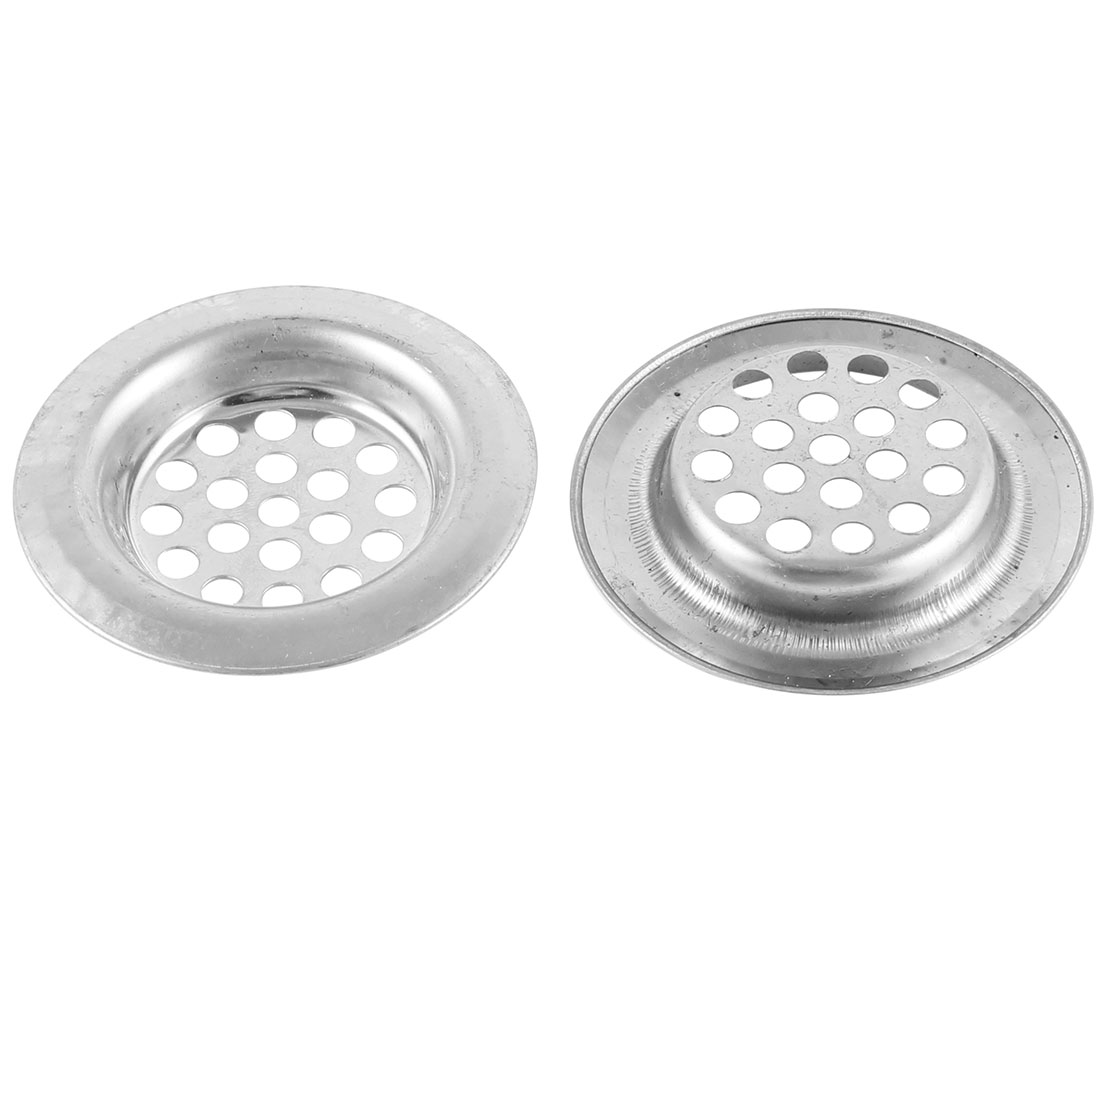 "2 Pcs Kitchen Round Metal 3"" Diameter Floor Drain Cover Water Leak"